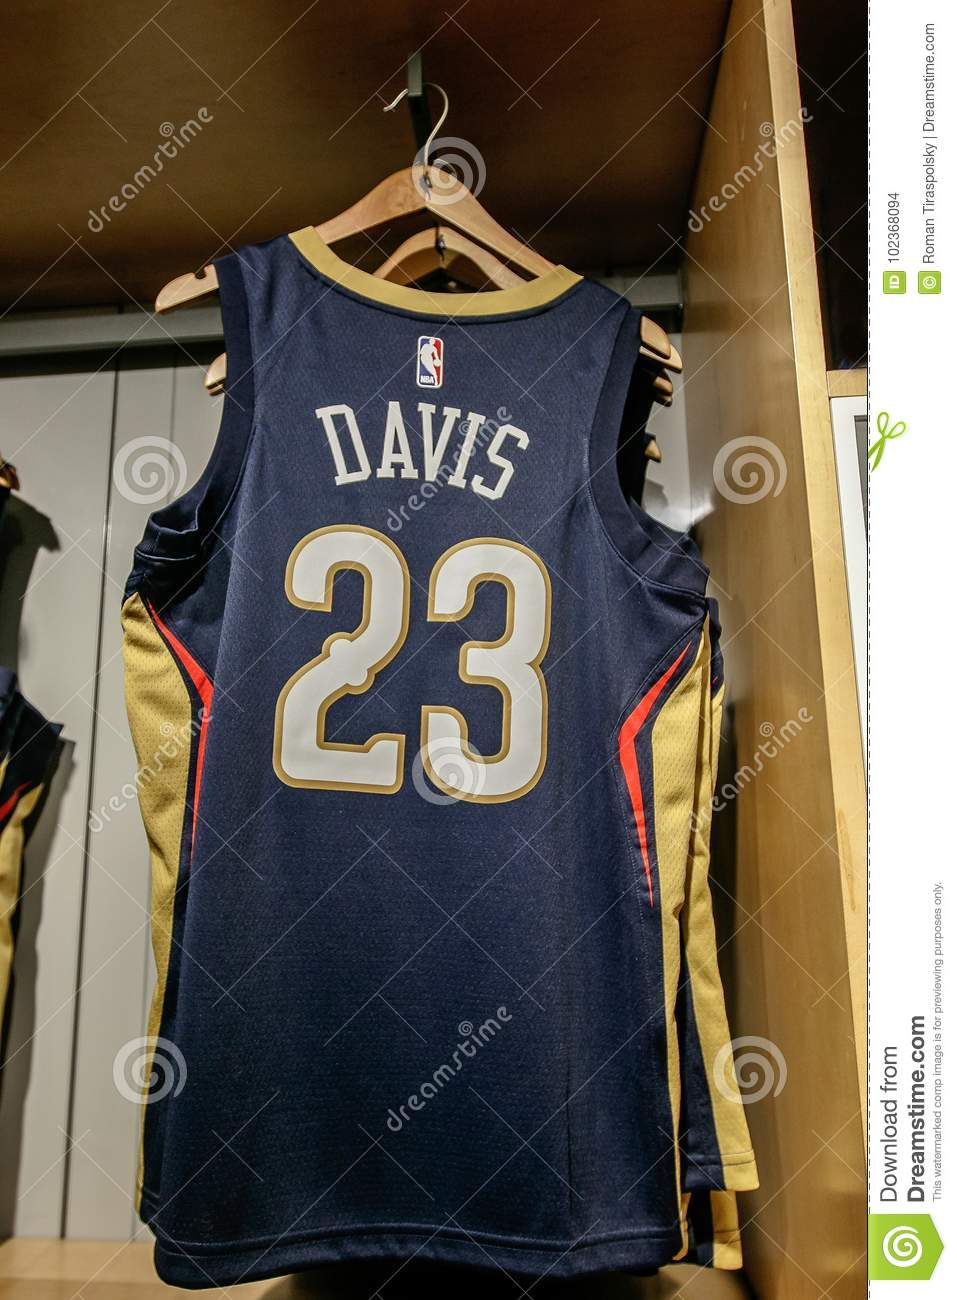 5da78ae0ac3 New York, October 20, 2017: Replica jersey of Anthony Davis of New Orleans  Pelicans on sale in the NBA store in Manhattan.